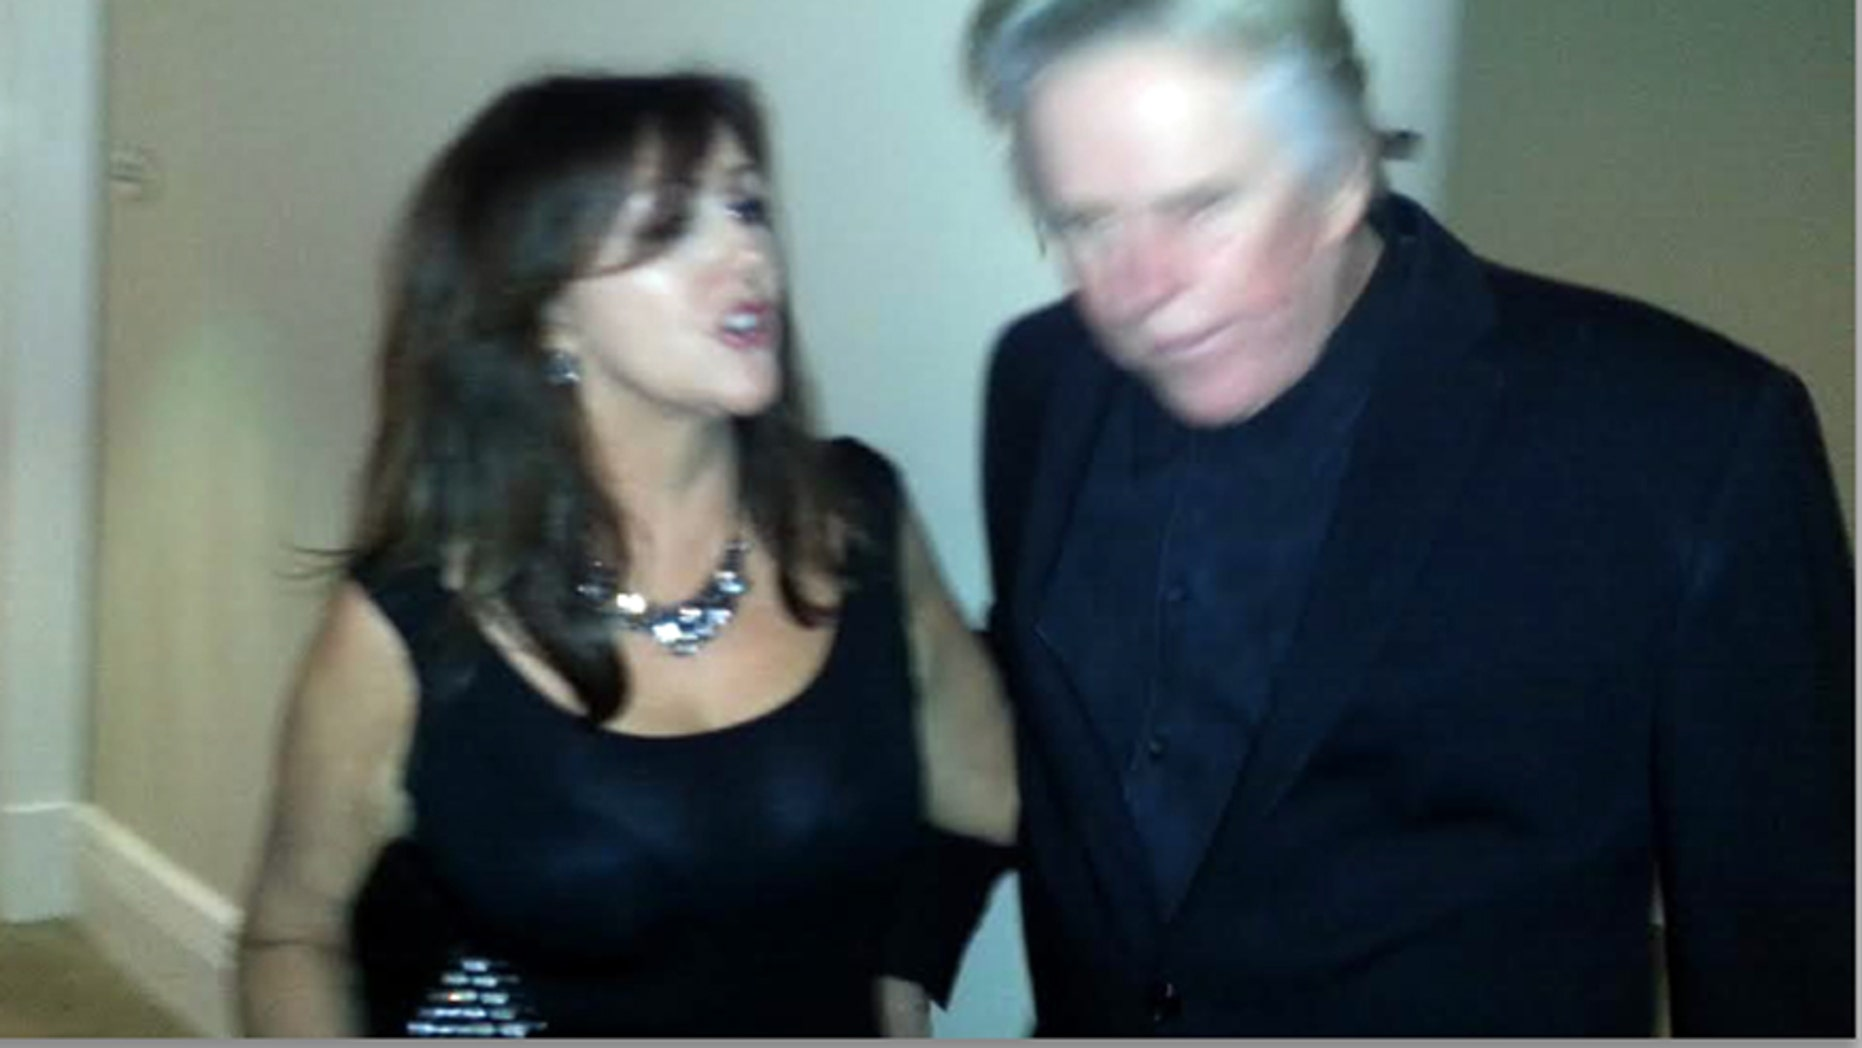 Krista Keller, right, and Gary Busey after the alleged slap took place.